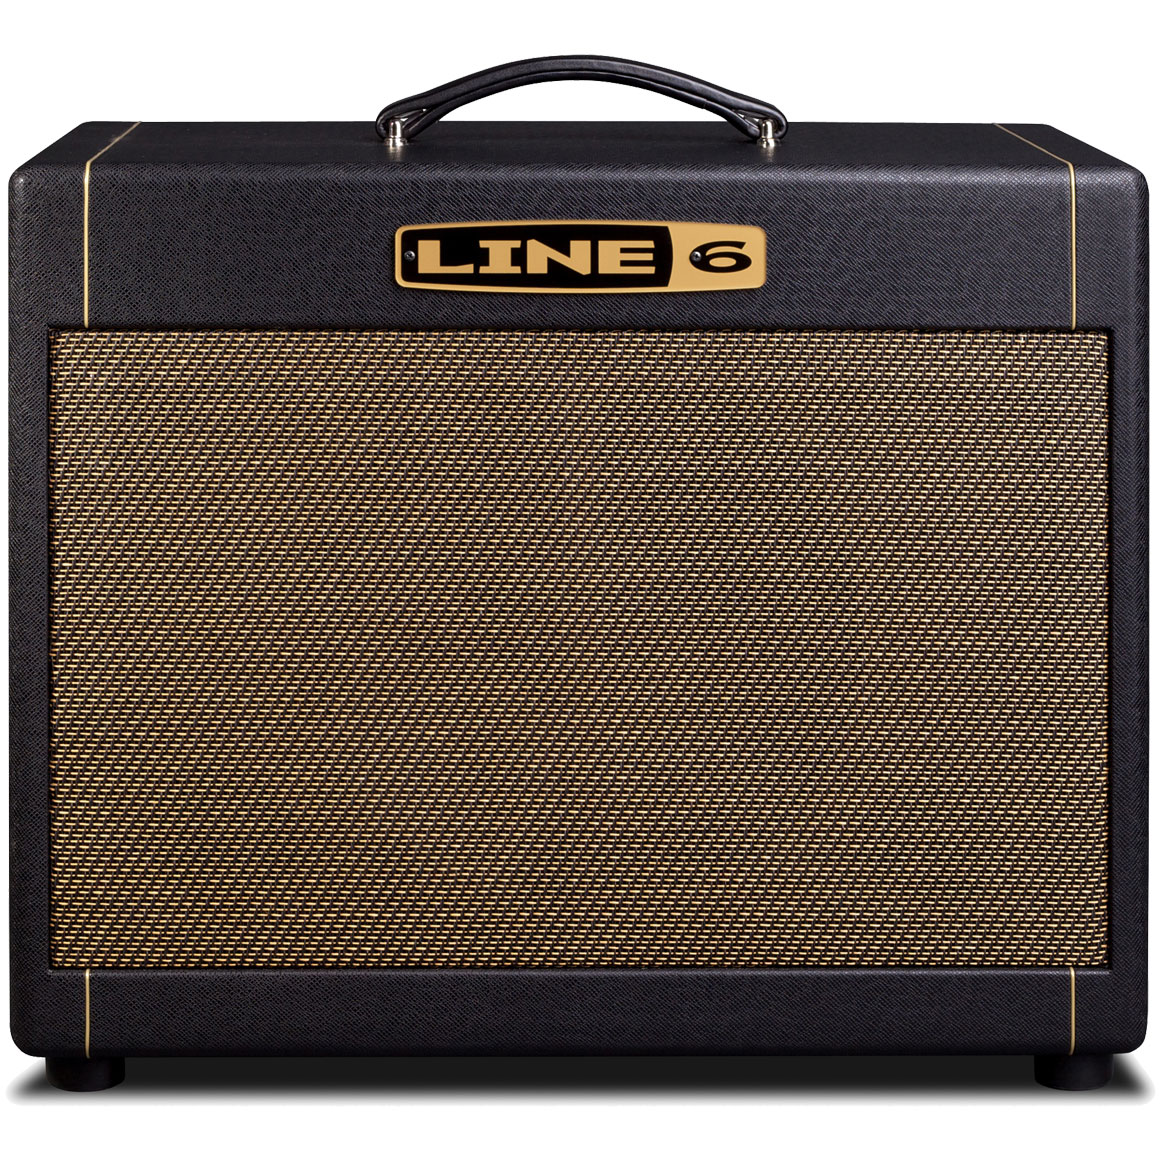 Line 6 DT25-112 25-watt 1x12 Modeling Combo Amplifier with Free Gator G-112A Transporter Case and Cable (LINE6 DT25 112)